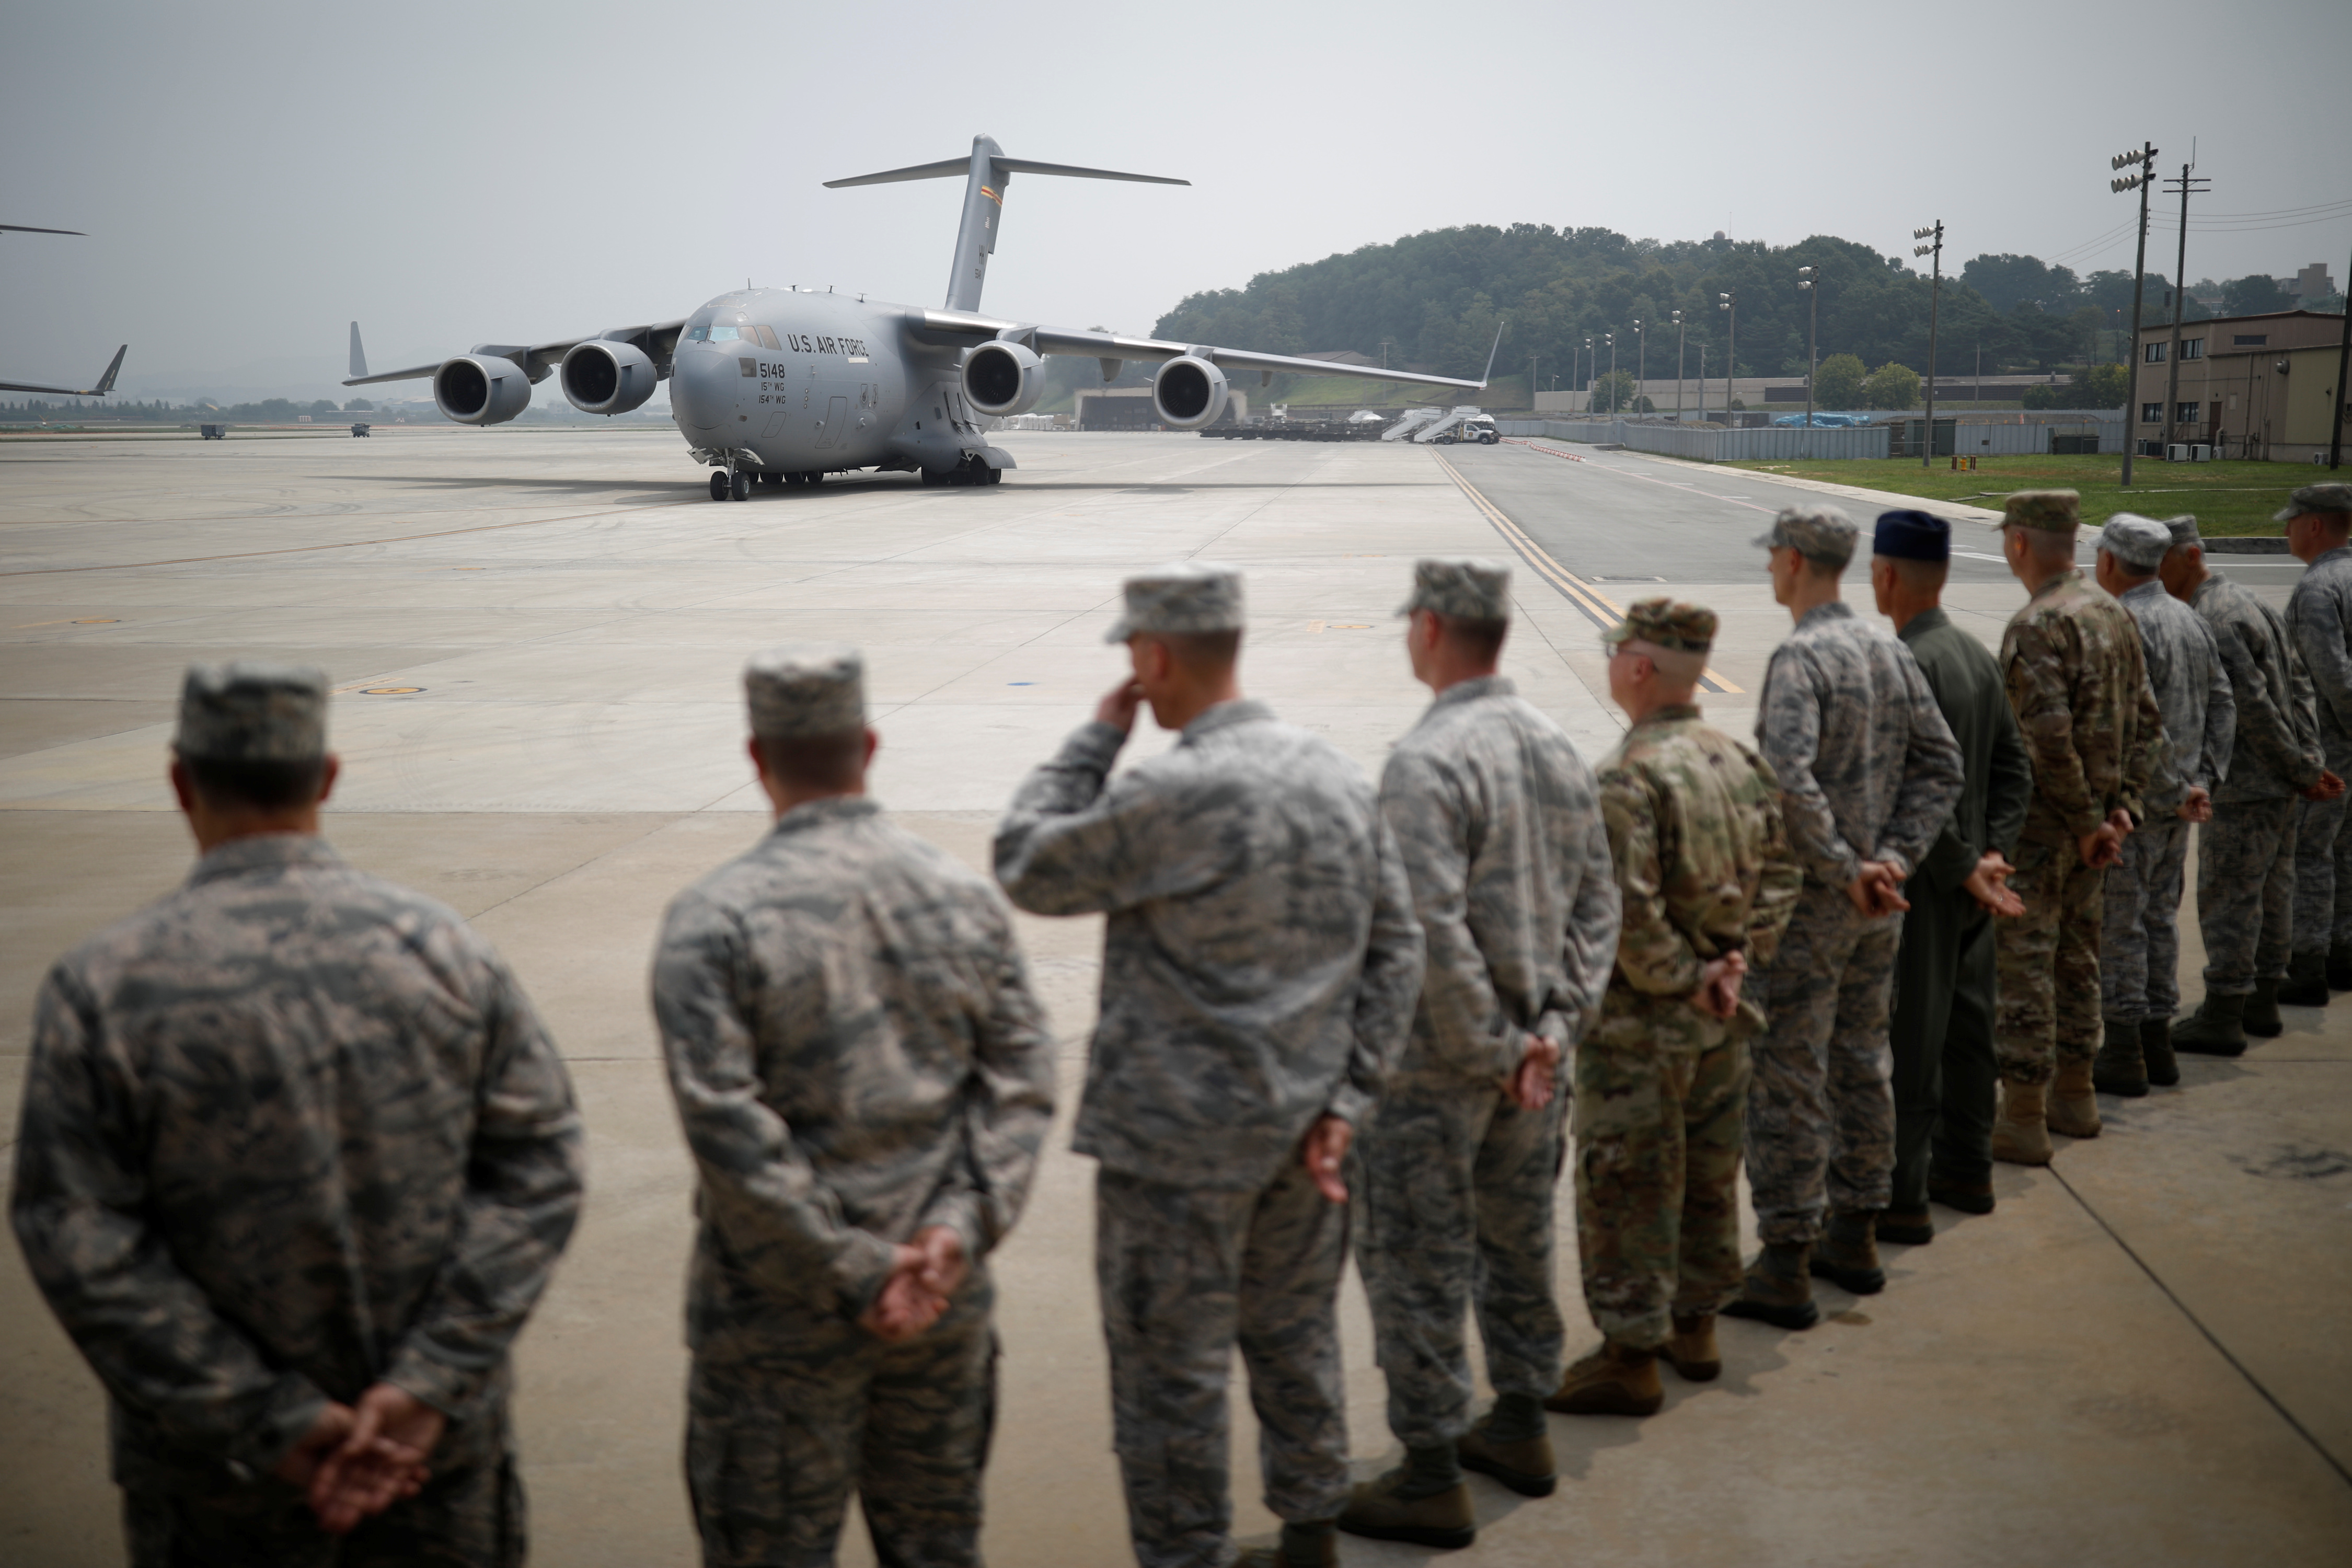 A U.S. cargo aircraft carrying the remains of 55 U.S. soldiers who were killed in the Korean War arrives at Osan Air Base in Pyeongtaek, South Korea, July 27, 2018. REUTERS/Kim Hong-Ji/Pool -